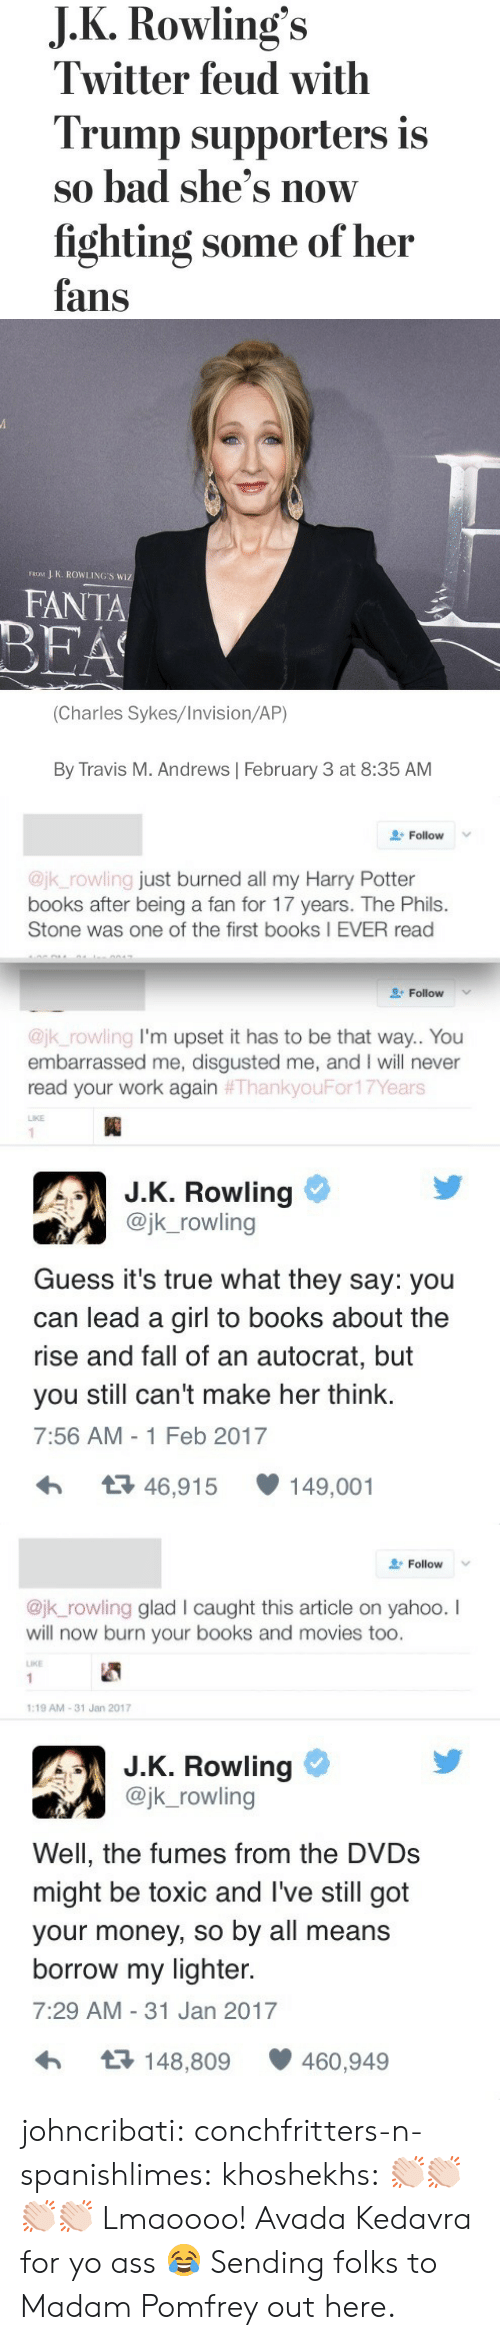 Fumes: J.K.Rowling's  Twitter feud with  Trump supporters is  so bad she's now  fighting some of her  fans   J K. ROWLING'S WIZ  FROM  FANTA  BEA  (Charles Sykes/Invision/AP)  By Travis M. Andrews February 3 at 8:35 AM   Follow  @jk_rowling just burned all my Harry Potter  books after being a fan for 17 years. The Phils.  Stone was one of the first books I EVER read  Follow  @jk_rowling I'm upset it has to be that way.. You  embarrassed me, disgusted me, and I will never  read your work again #ThankyouFor17Years  LIKE  1  J.K. Rowling  @jk_rowling  Guess it's true what they say: you  can lead a girl to books about the  rise and fall of an autocrat, but  make her think.  you still can't  7:56 AM -1 Feb 2017  t46,915  149,001   Follow  @jk_rowling glad l caught this article on yahoo. I  will now burn your books and movies too.  LIKE  1  1:19 AM-31 Jan 2017  J.K. Rowling  @jk_rowling  Well, the fumes from the DVDS  might be toxic and I've still got  your money, so by all means  borrow my lighter.  7:29 AM 31 Jan 2017  t148,809  460,949 johncribati: conchfritters-n-spanishlimes:  khoshekhs: 👏🏻👏🏻👏🏻👏🏻  Lmaoooo! Avada Kedavra for yo ass 😂   Sending folks to Madam Pomfrey out here.